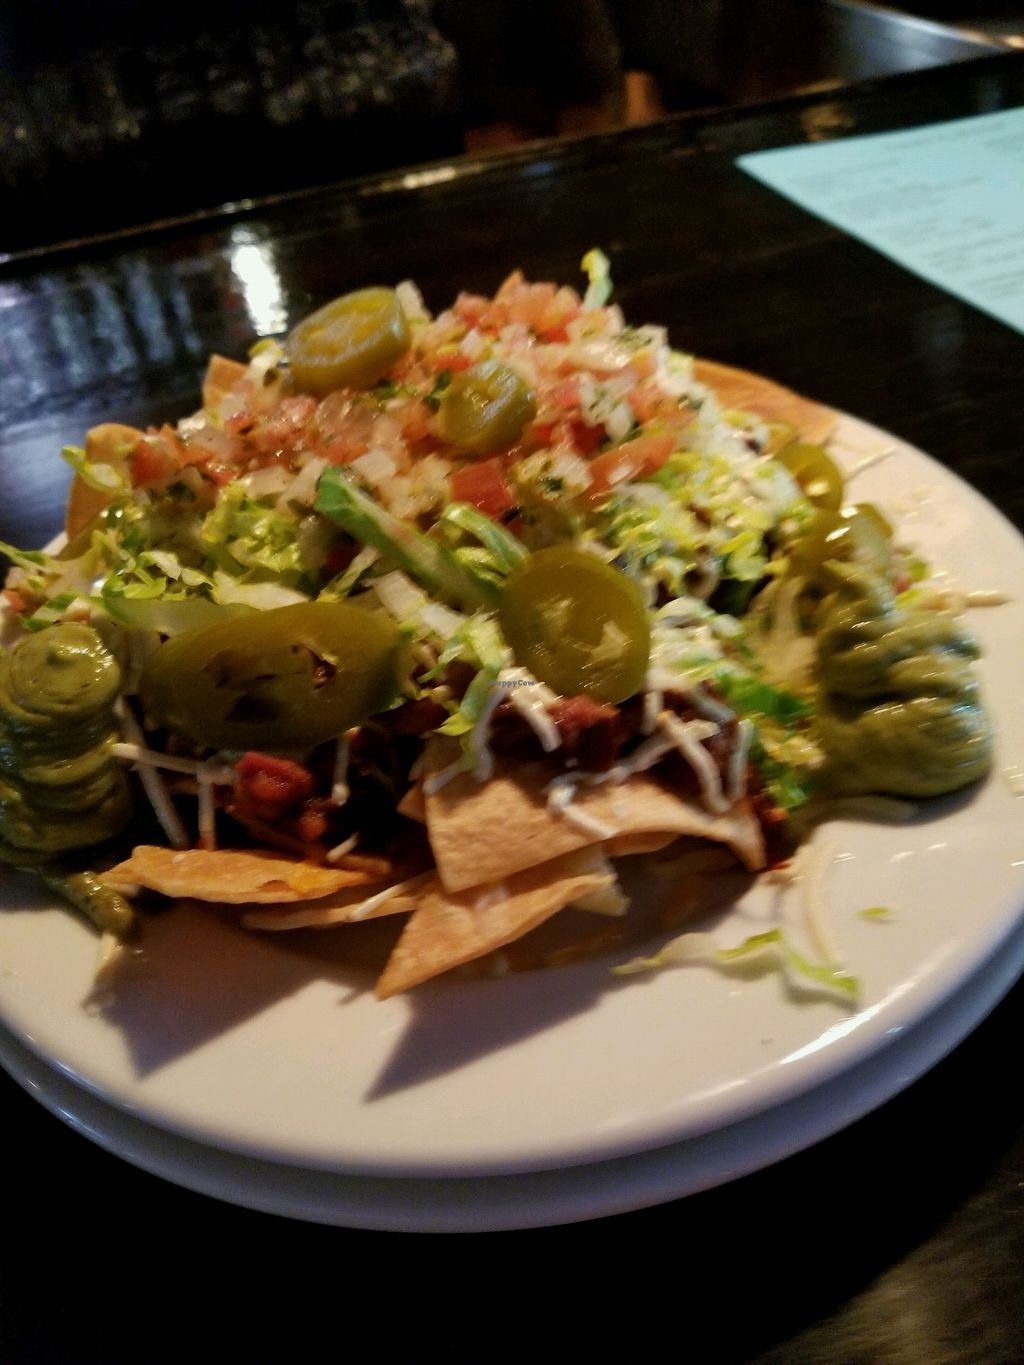 """Photo of Black & Blue  by <a href=""""/members/profile/michele6952"""">michele6952</a> <br/>vegan nachos  <br/> April 15, 2018  - <a href='/contact/abuse/image/79580/386014'>Report</a>"""